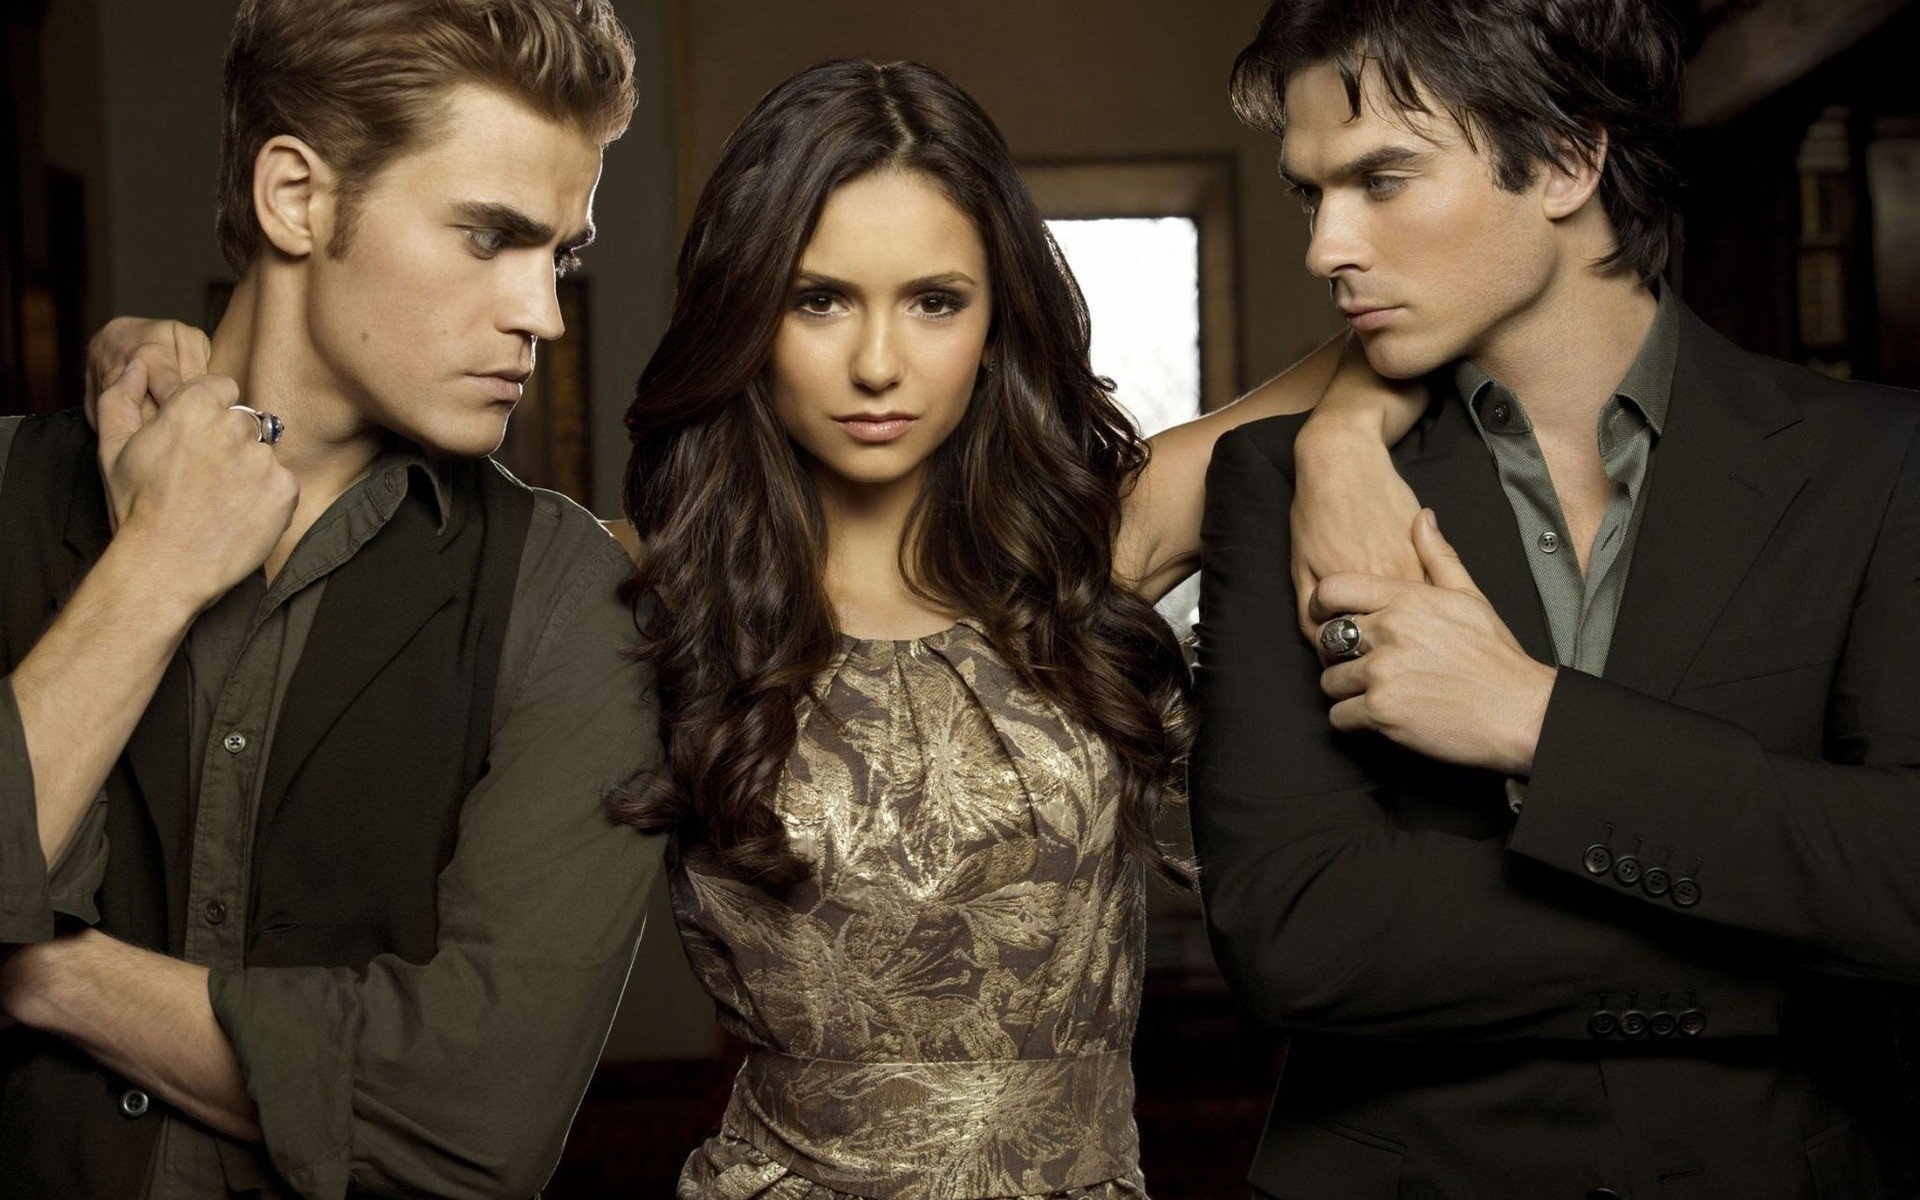 78 The Vampire Diaries HD Wallpapers   Backgrounds - Wallpaper Abyss